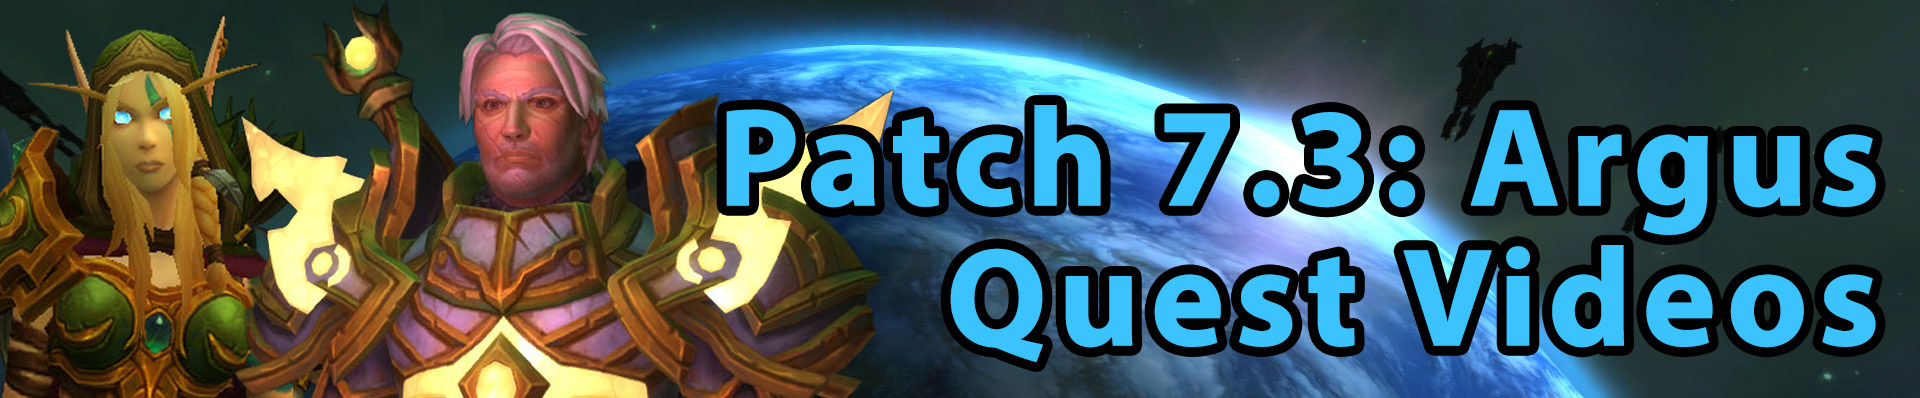 Patch 7.3 quest videos